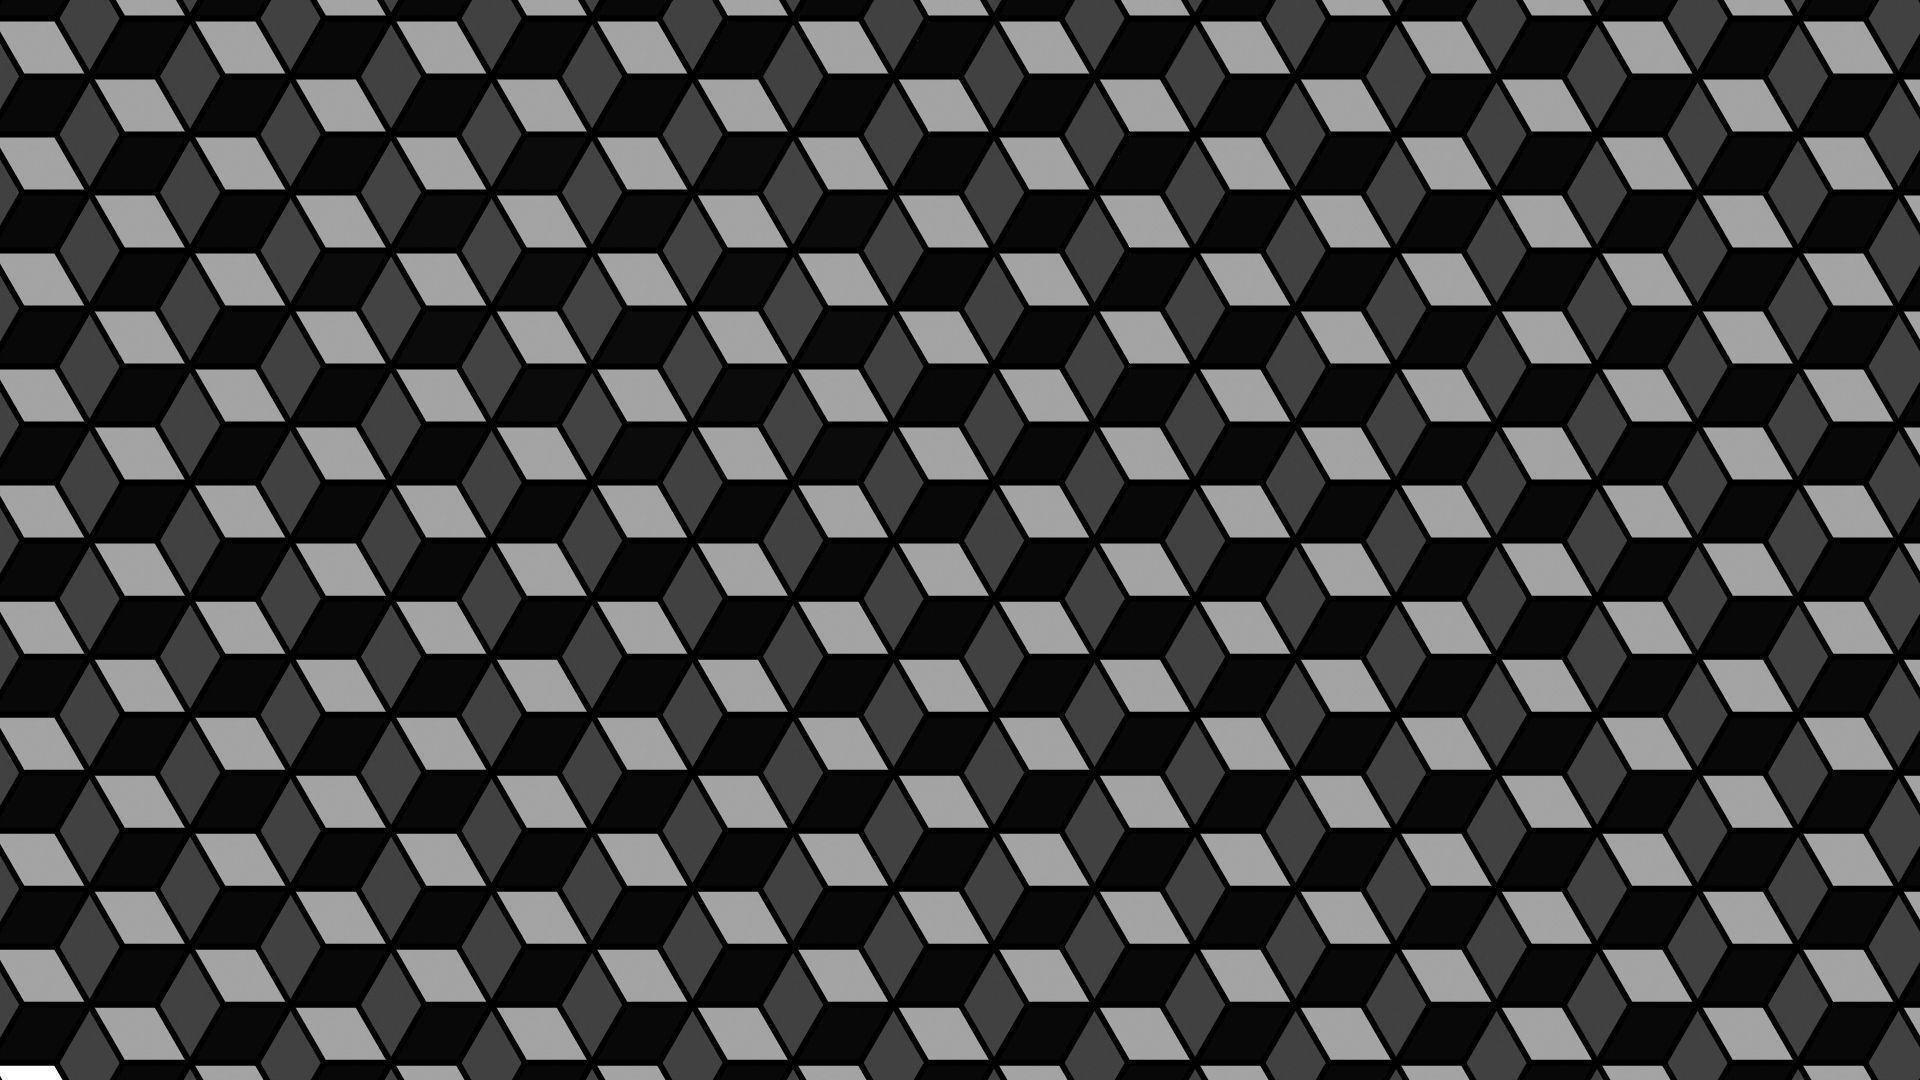 Res: 1920x1080, Optical Illusions Wallpaper Iphone · Optical Illusions Wallpaper .